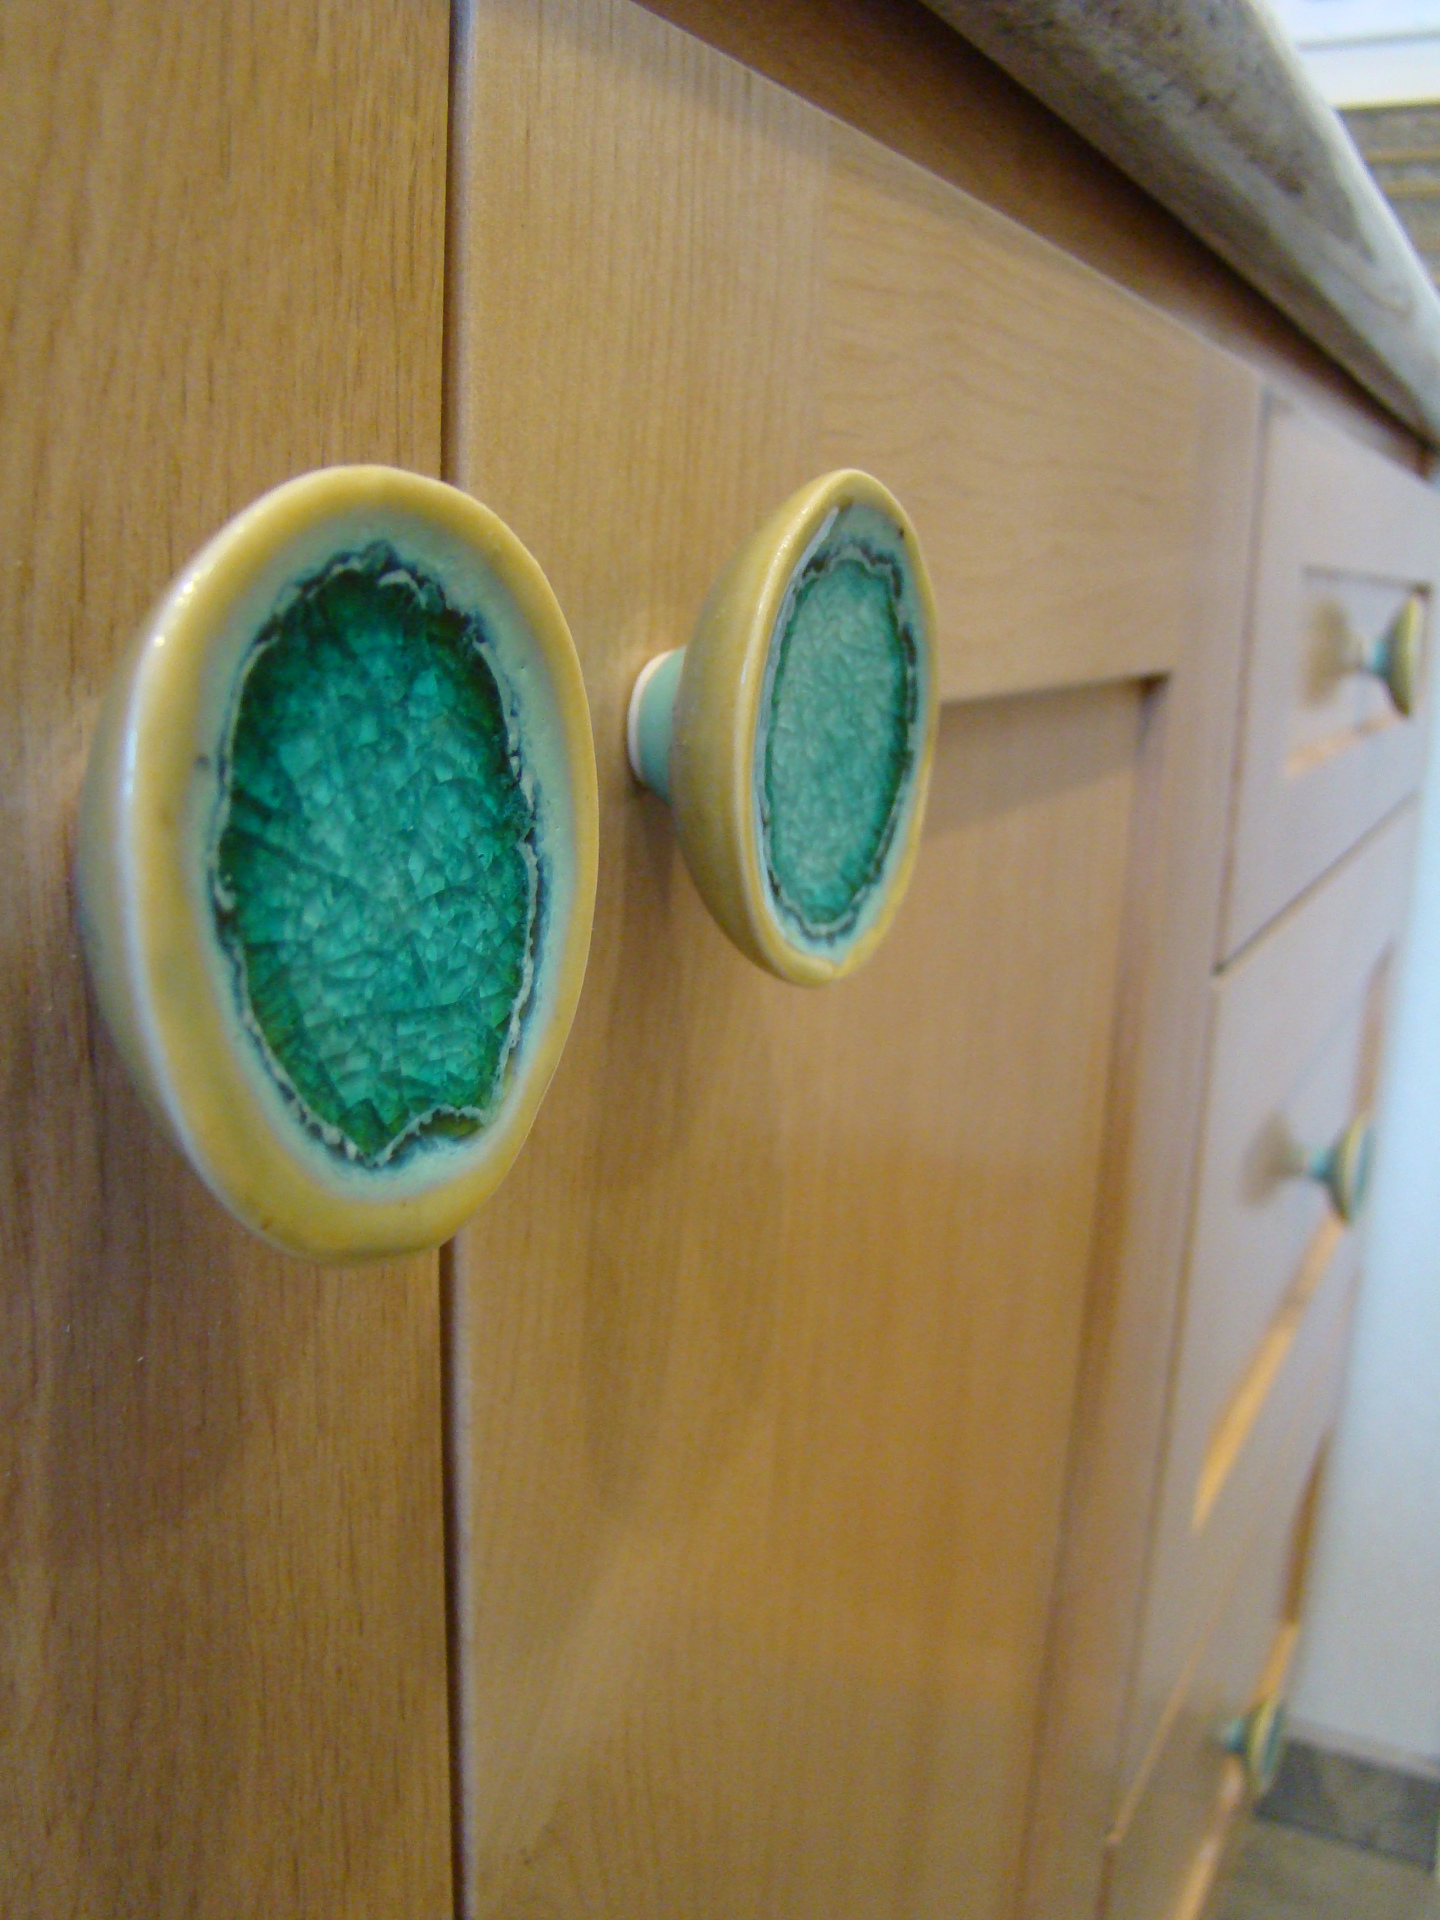 Fiorito Interior Design, interior design, remodel, bathroom, tropical, custom vanity, ceramic door handles